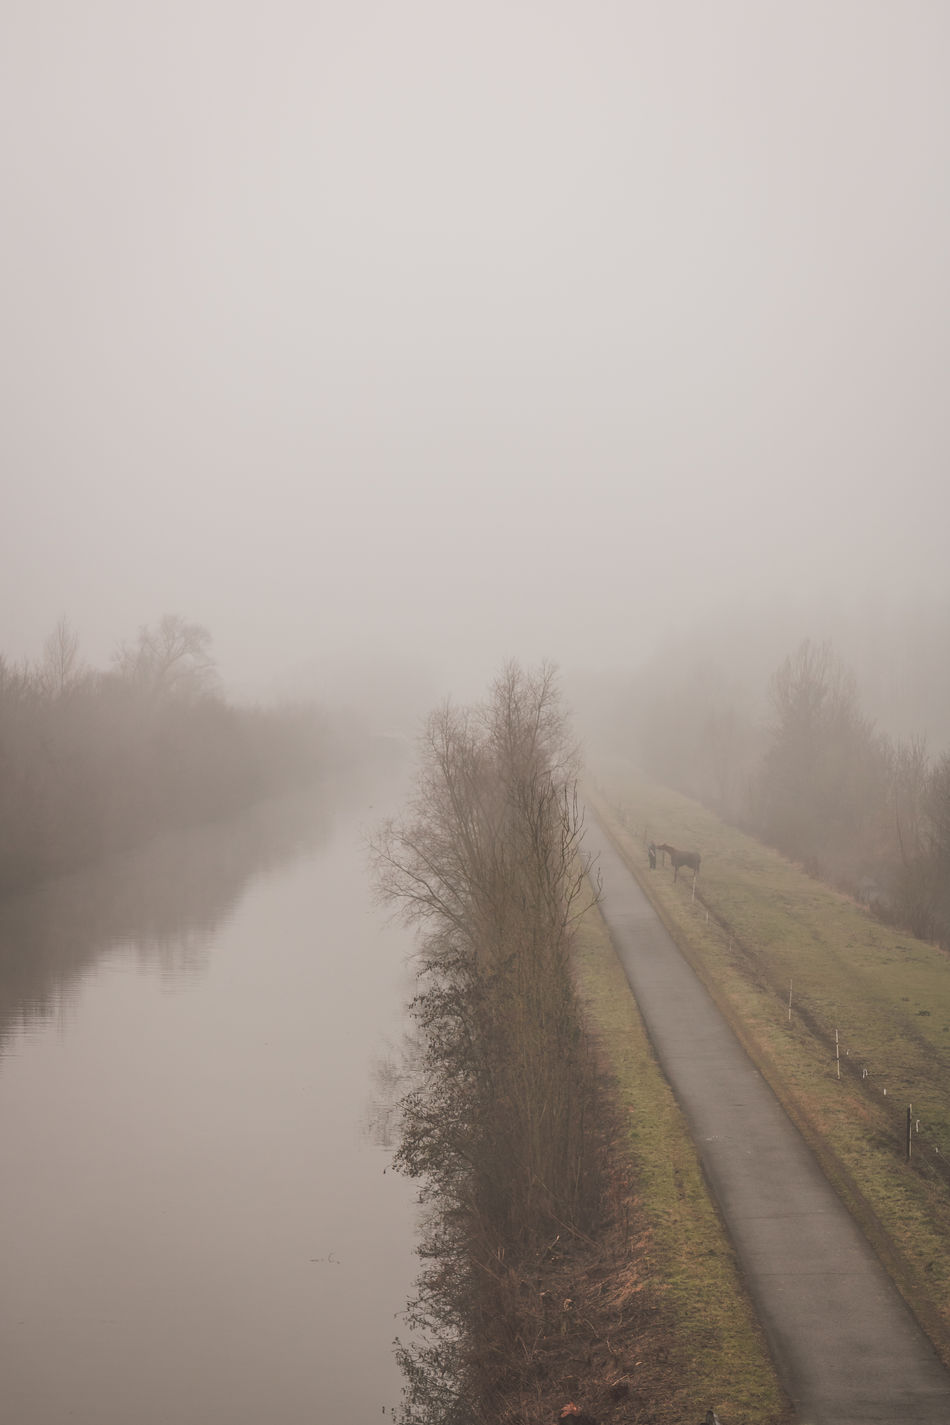 Bare Tree Beauty In Nature Dawn Day Distance Fog Grass Horse Landscape Nature No People Outdoors River Road Scenics Sky Towpath Tranquil Scene Tranquility Tree